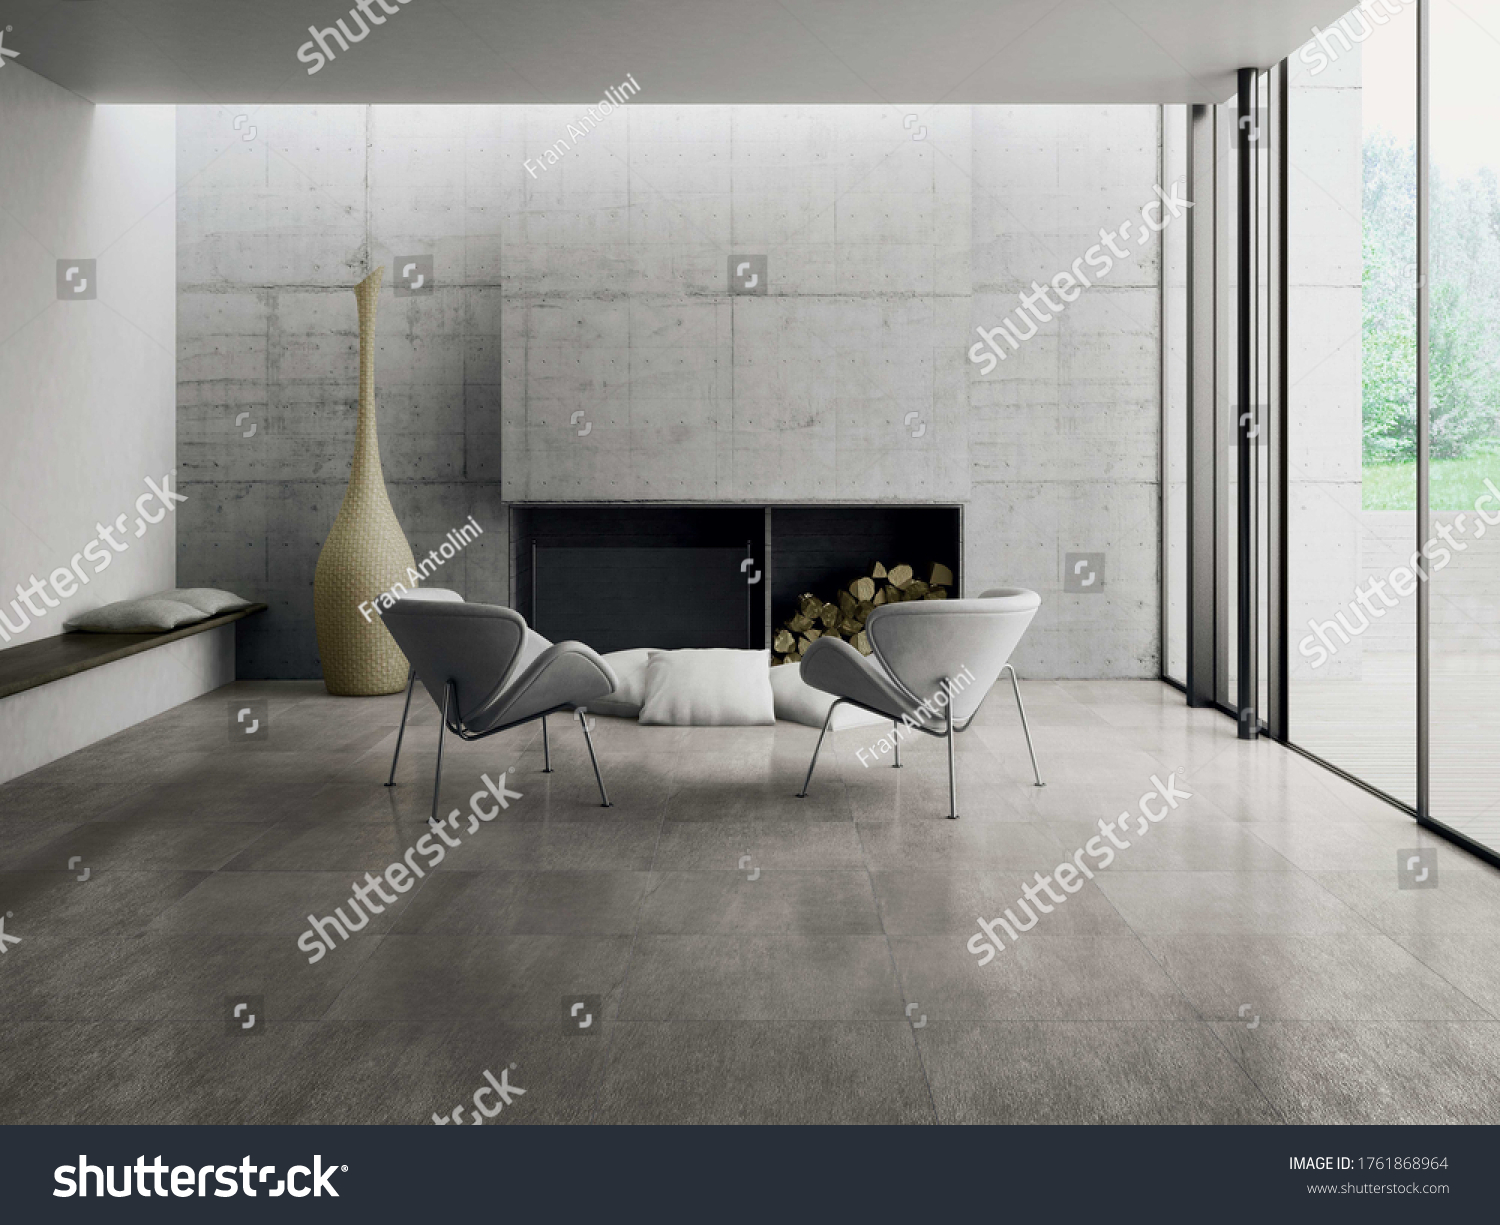 Modern living room with grey  tiles, seamless design, luxurious interior background. #1761868964